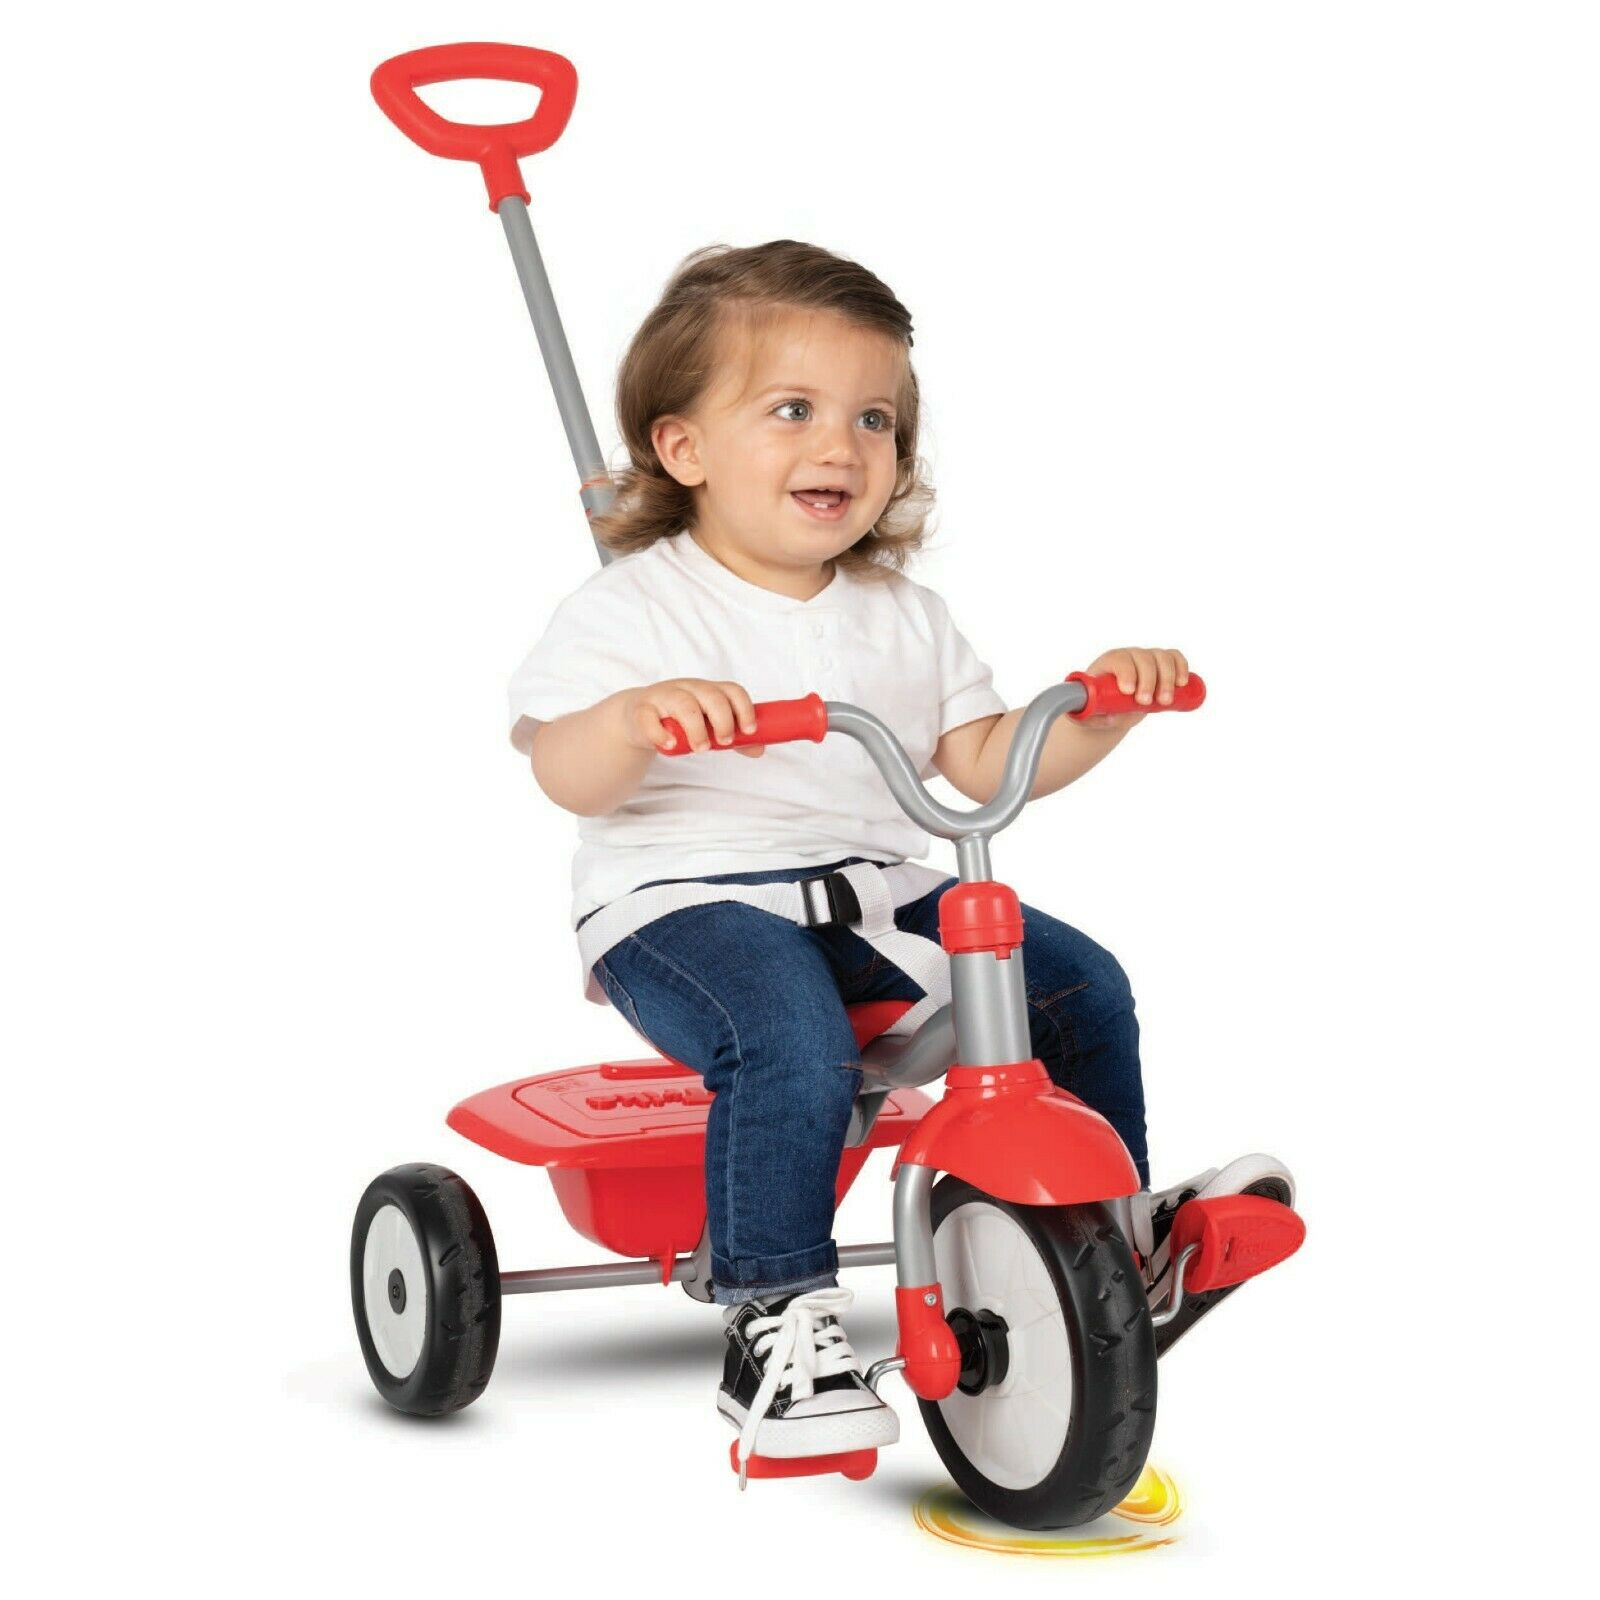 Smartrike Folding Fun Tricycle Red